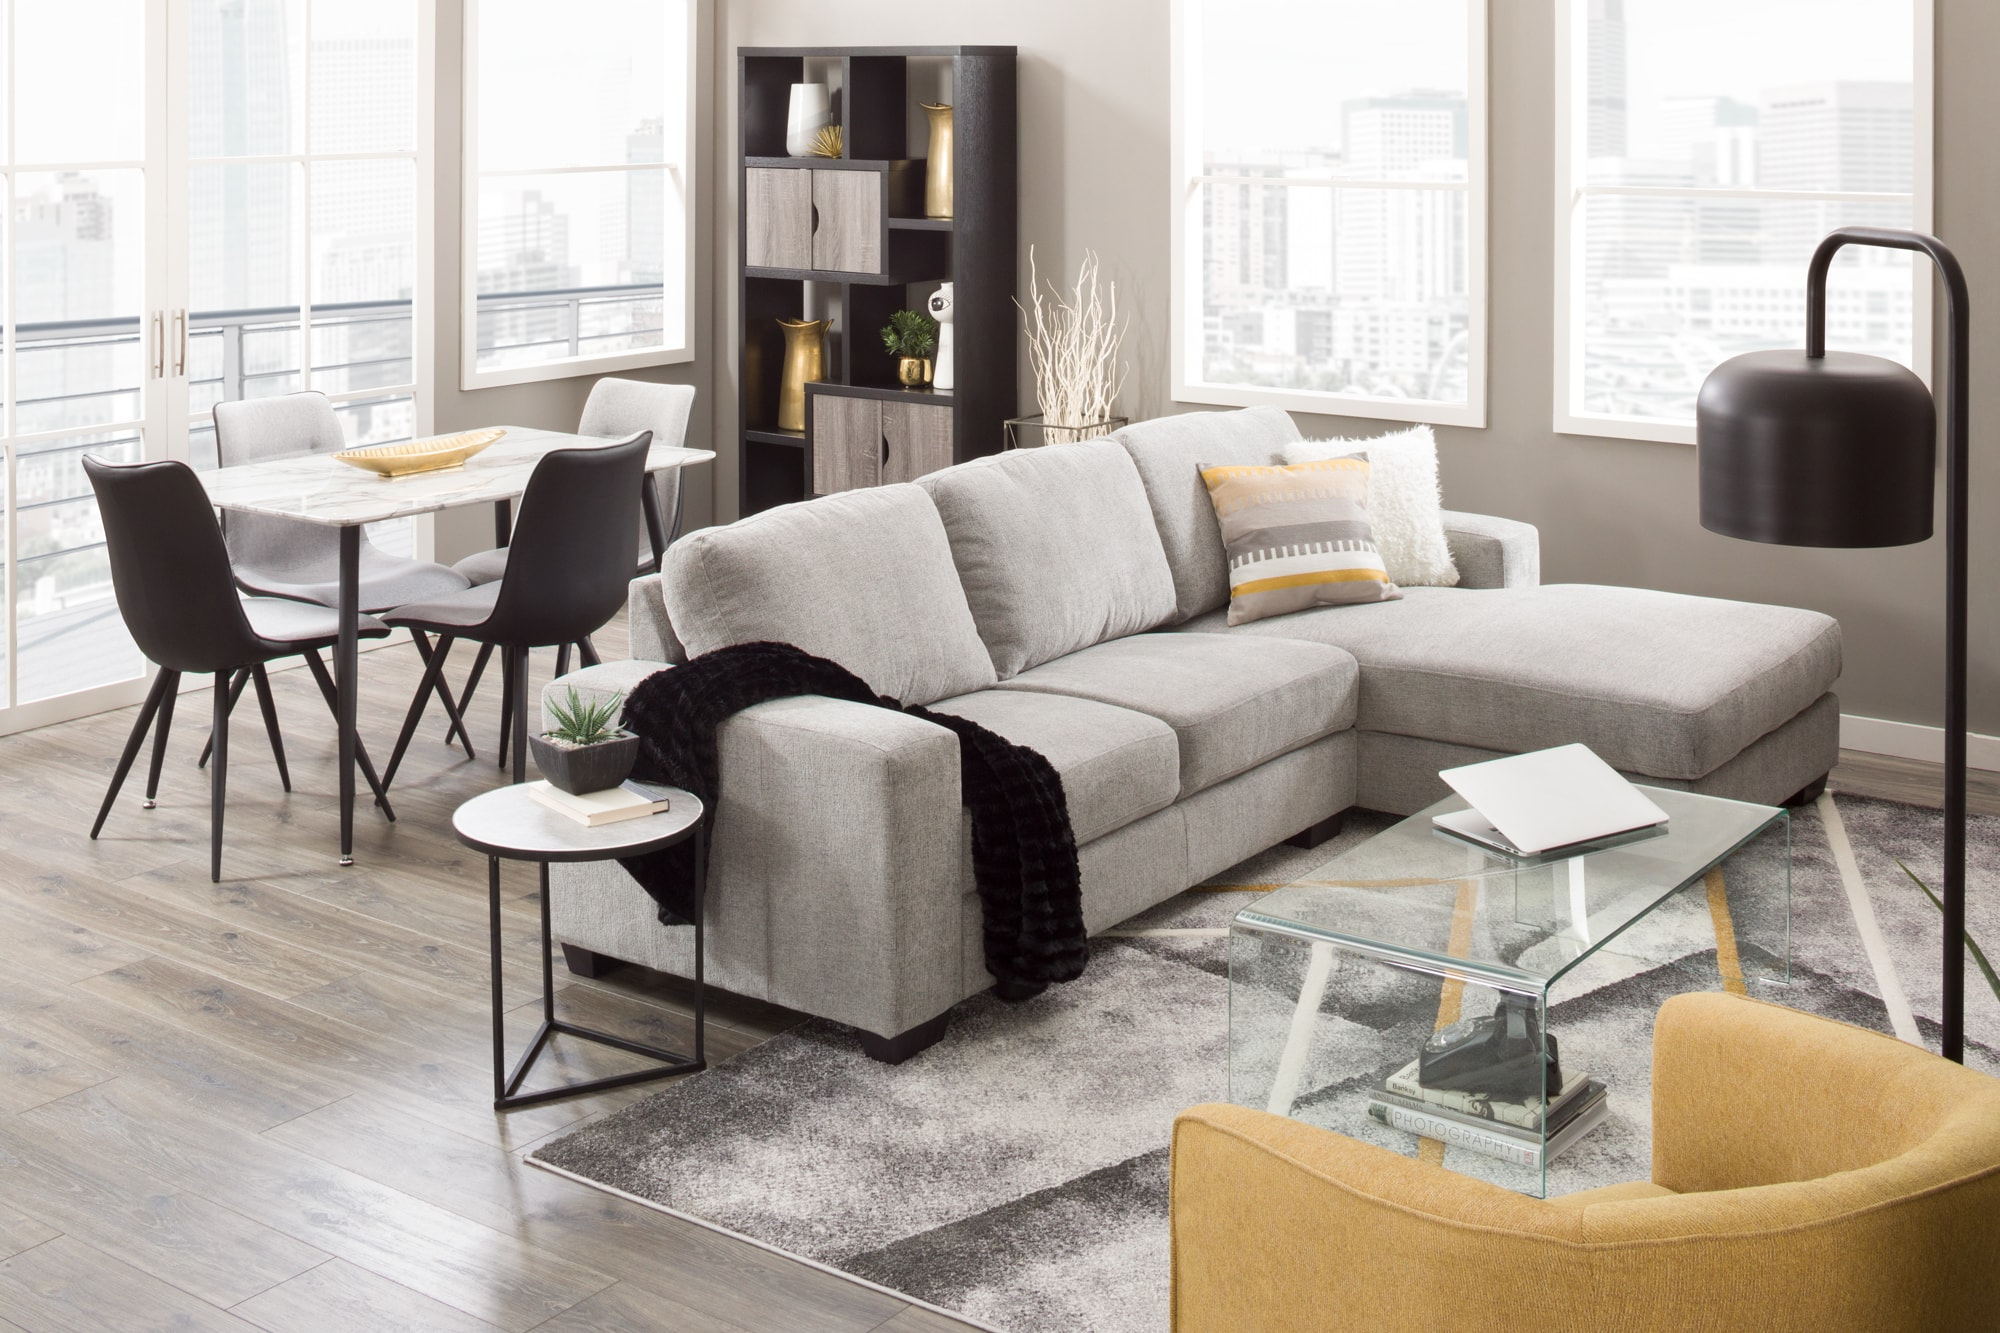 Sectional with table and chairs